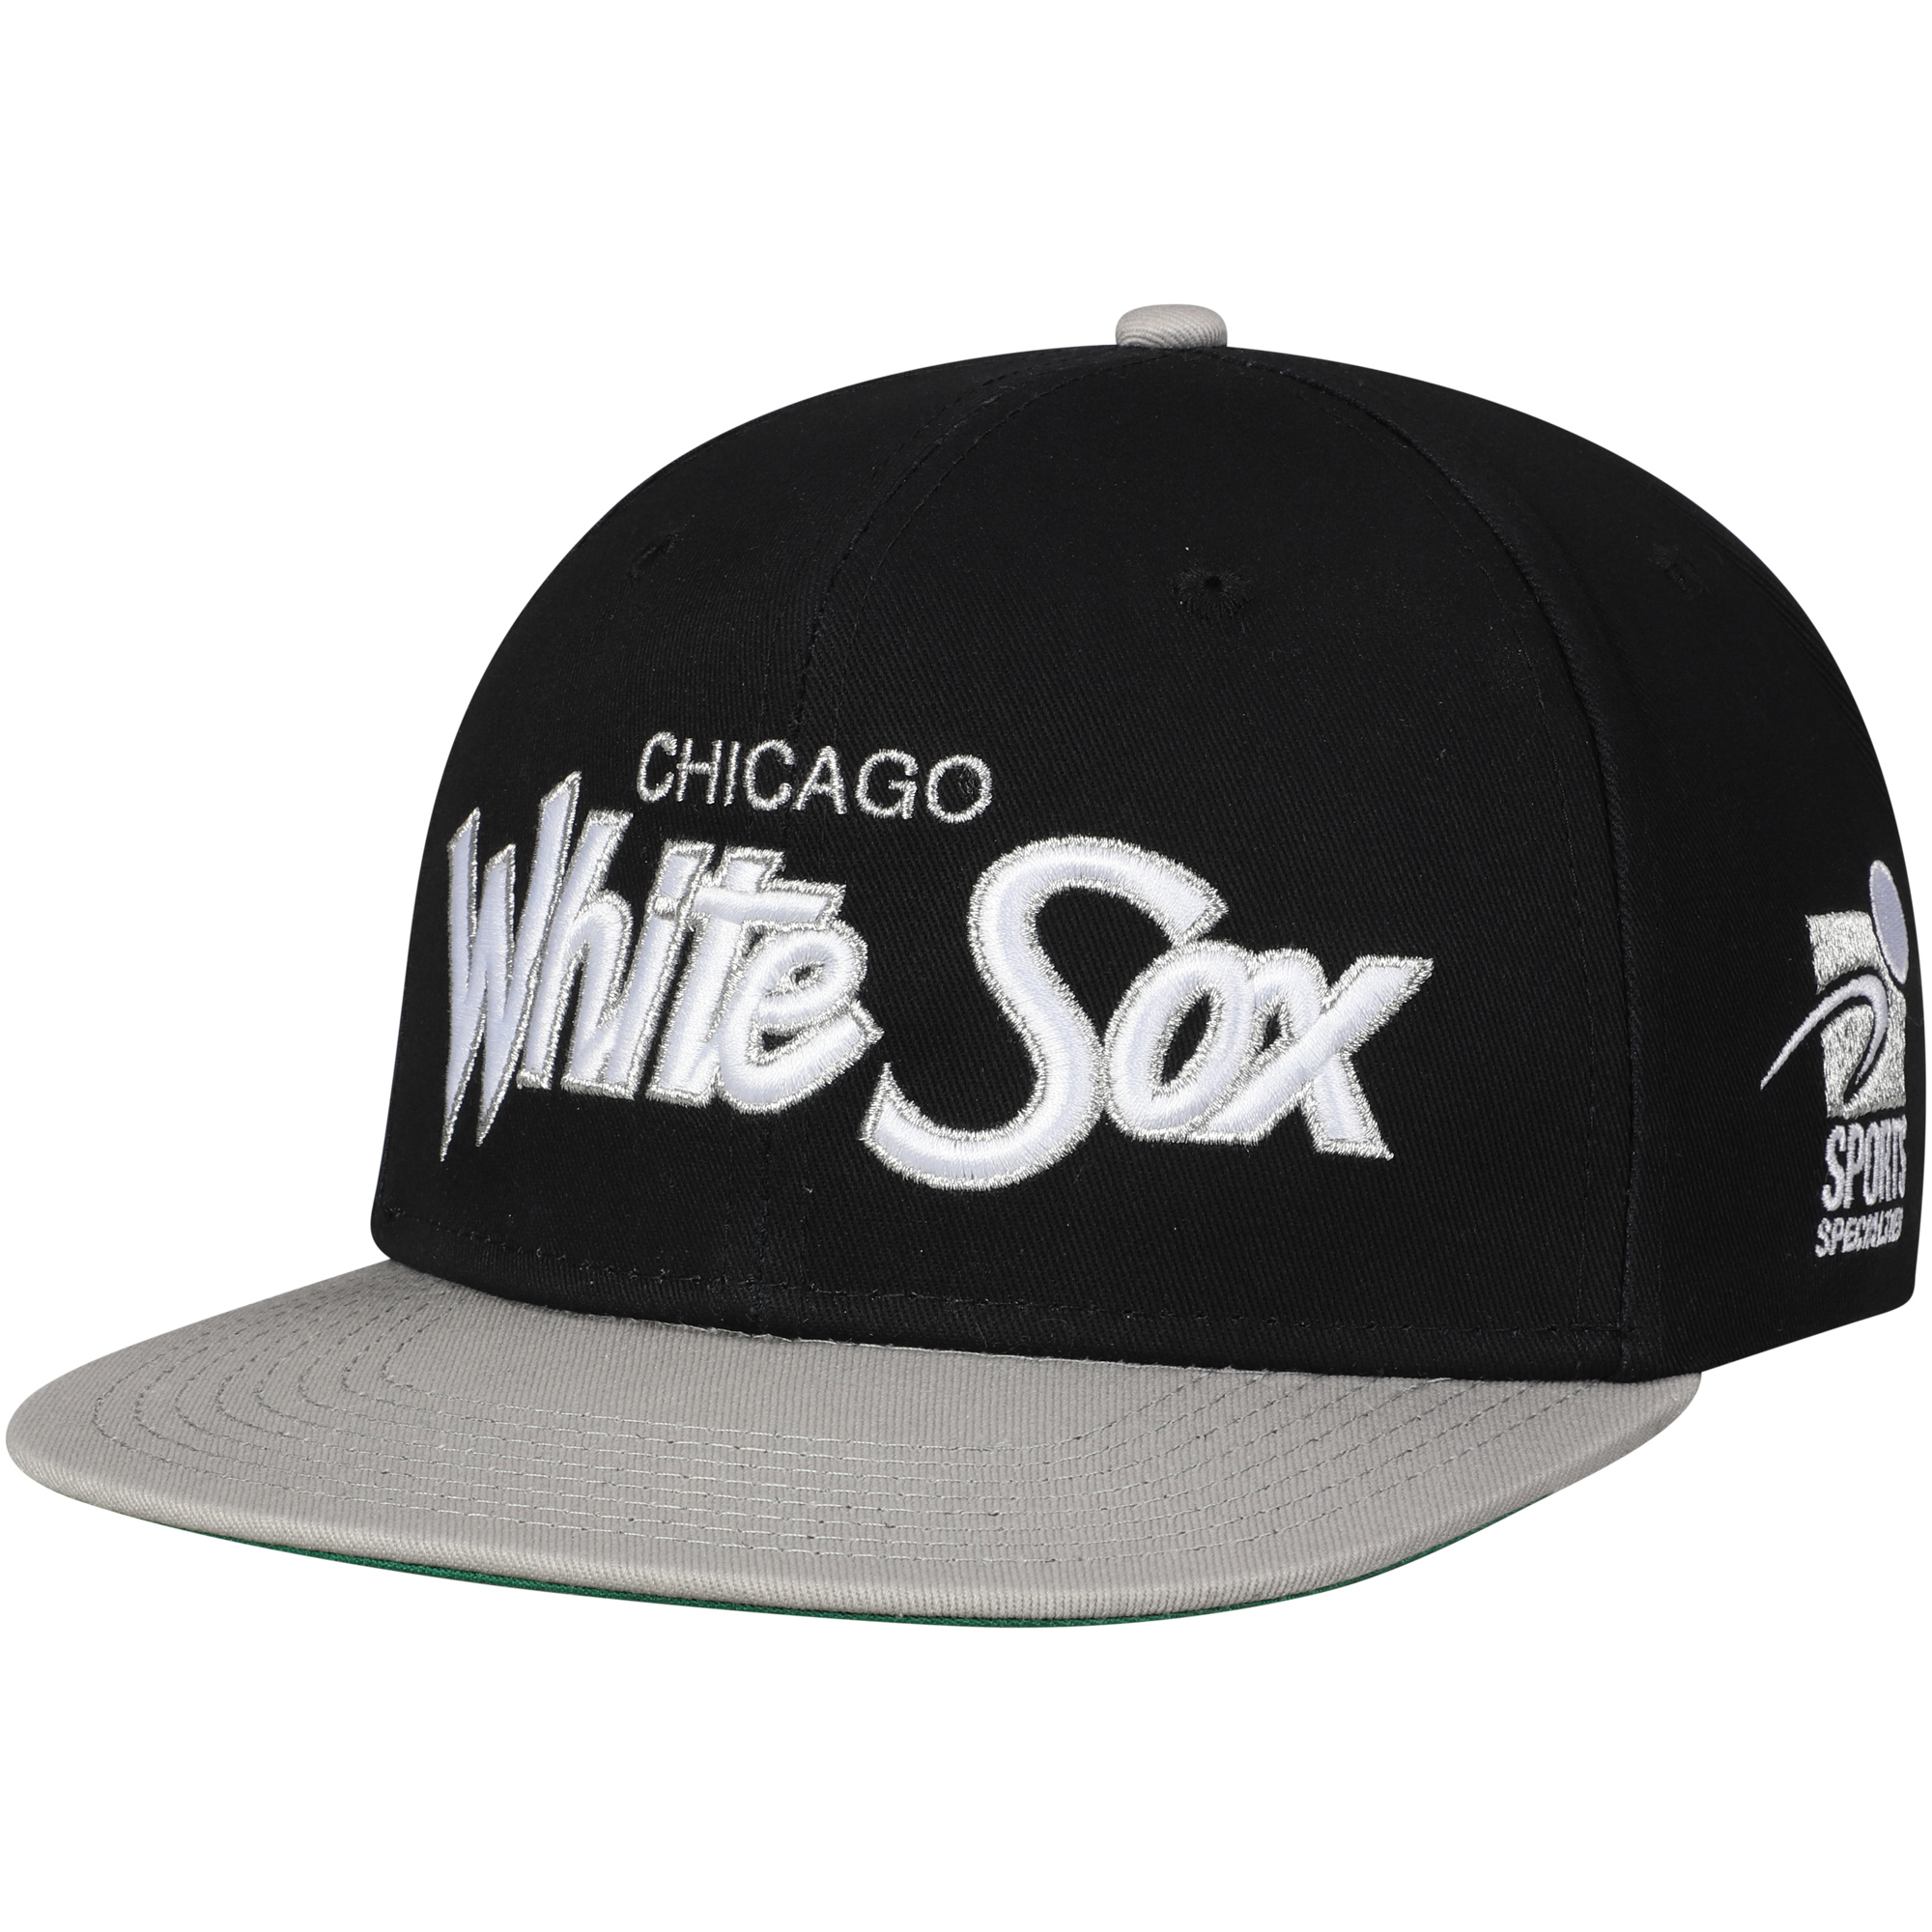 big sale 38a92 d76a7 ... netherlands product image chicago white sox nike pro cap sport  specialties snapback adjustable hat black osfa